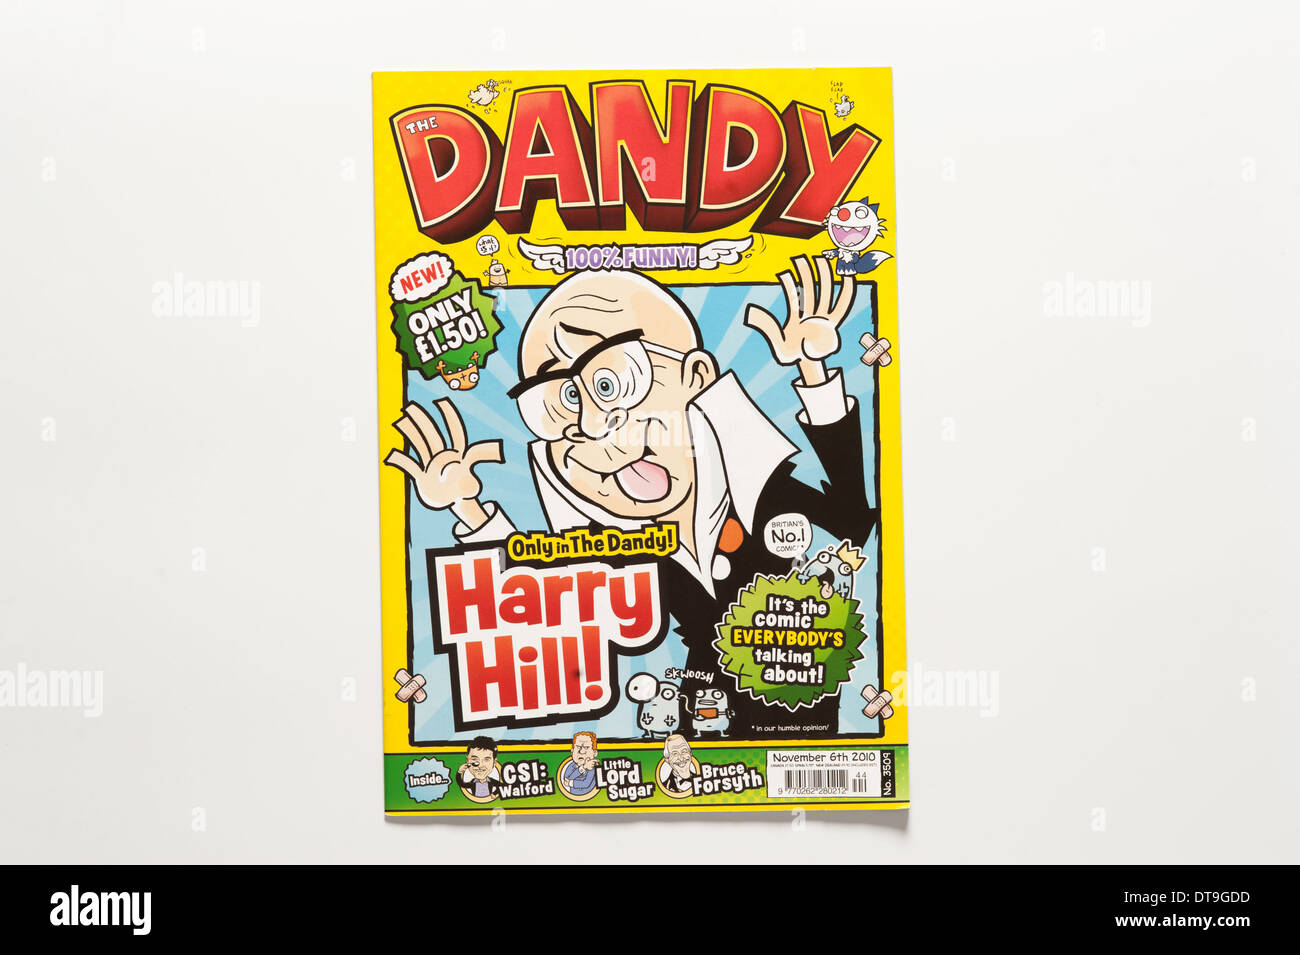 The Dandy - Stock Image